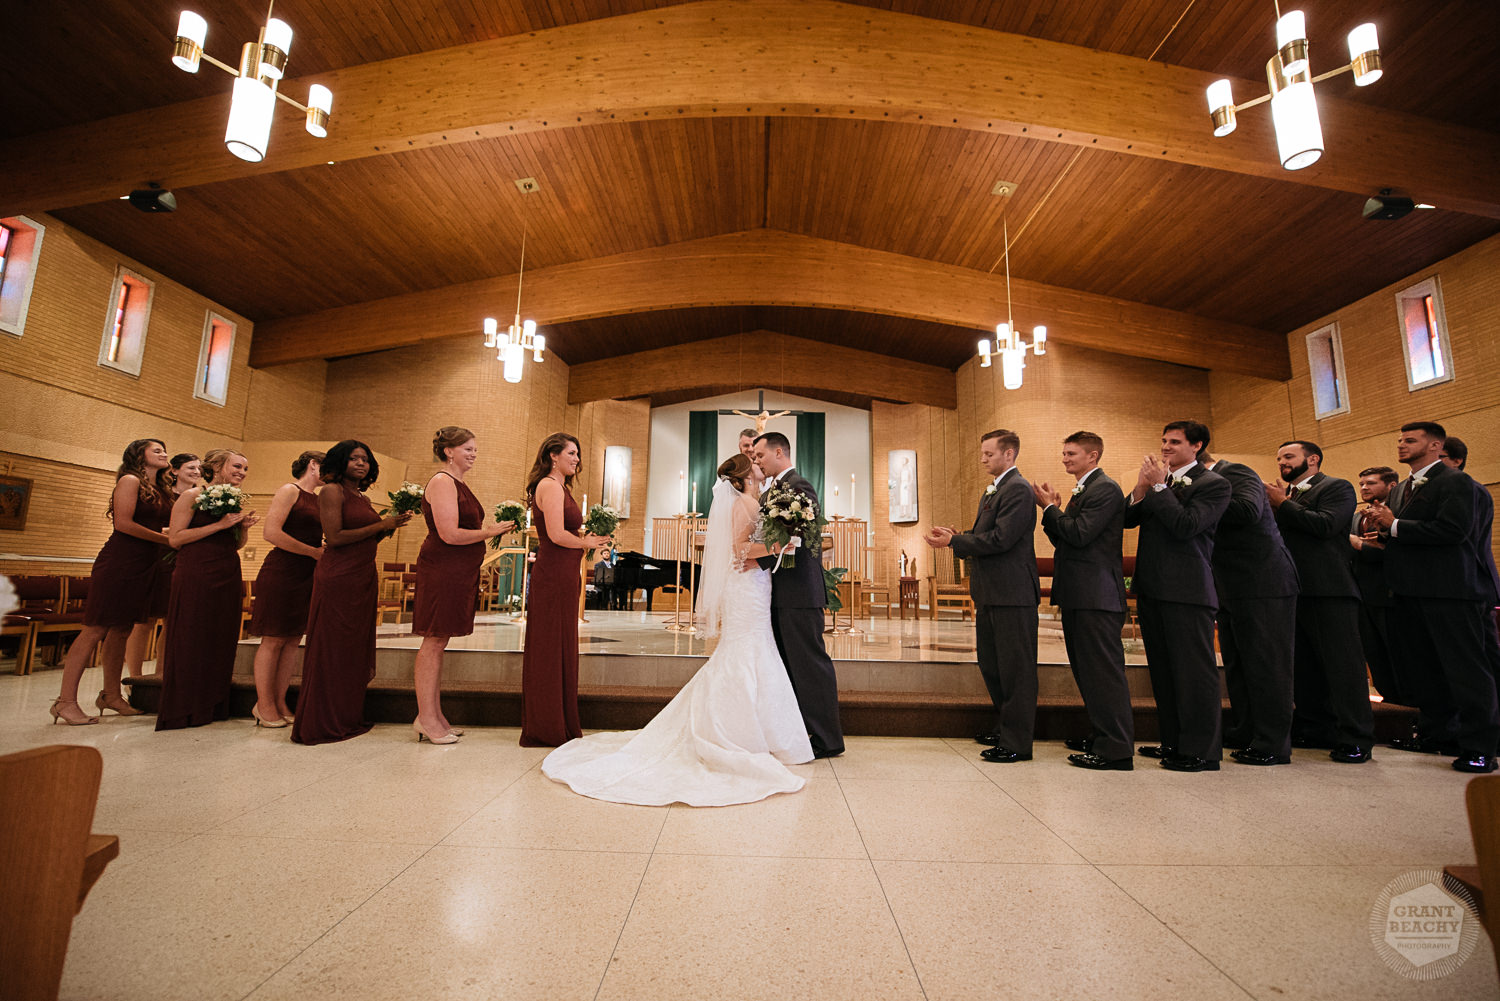 Grant Beachy wedding photographer, south bend, elkhart, chicago-18.jpg